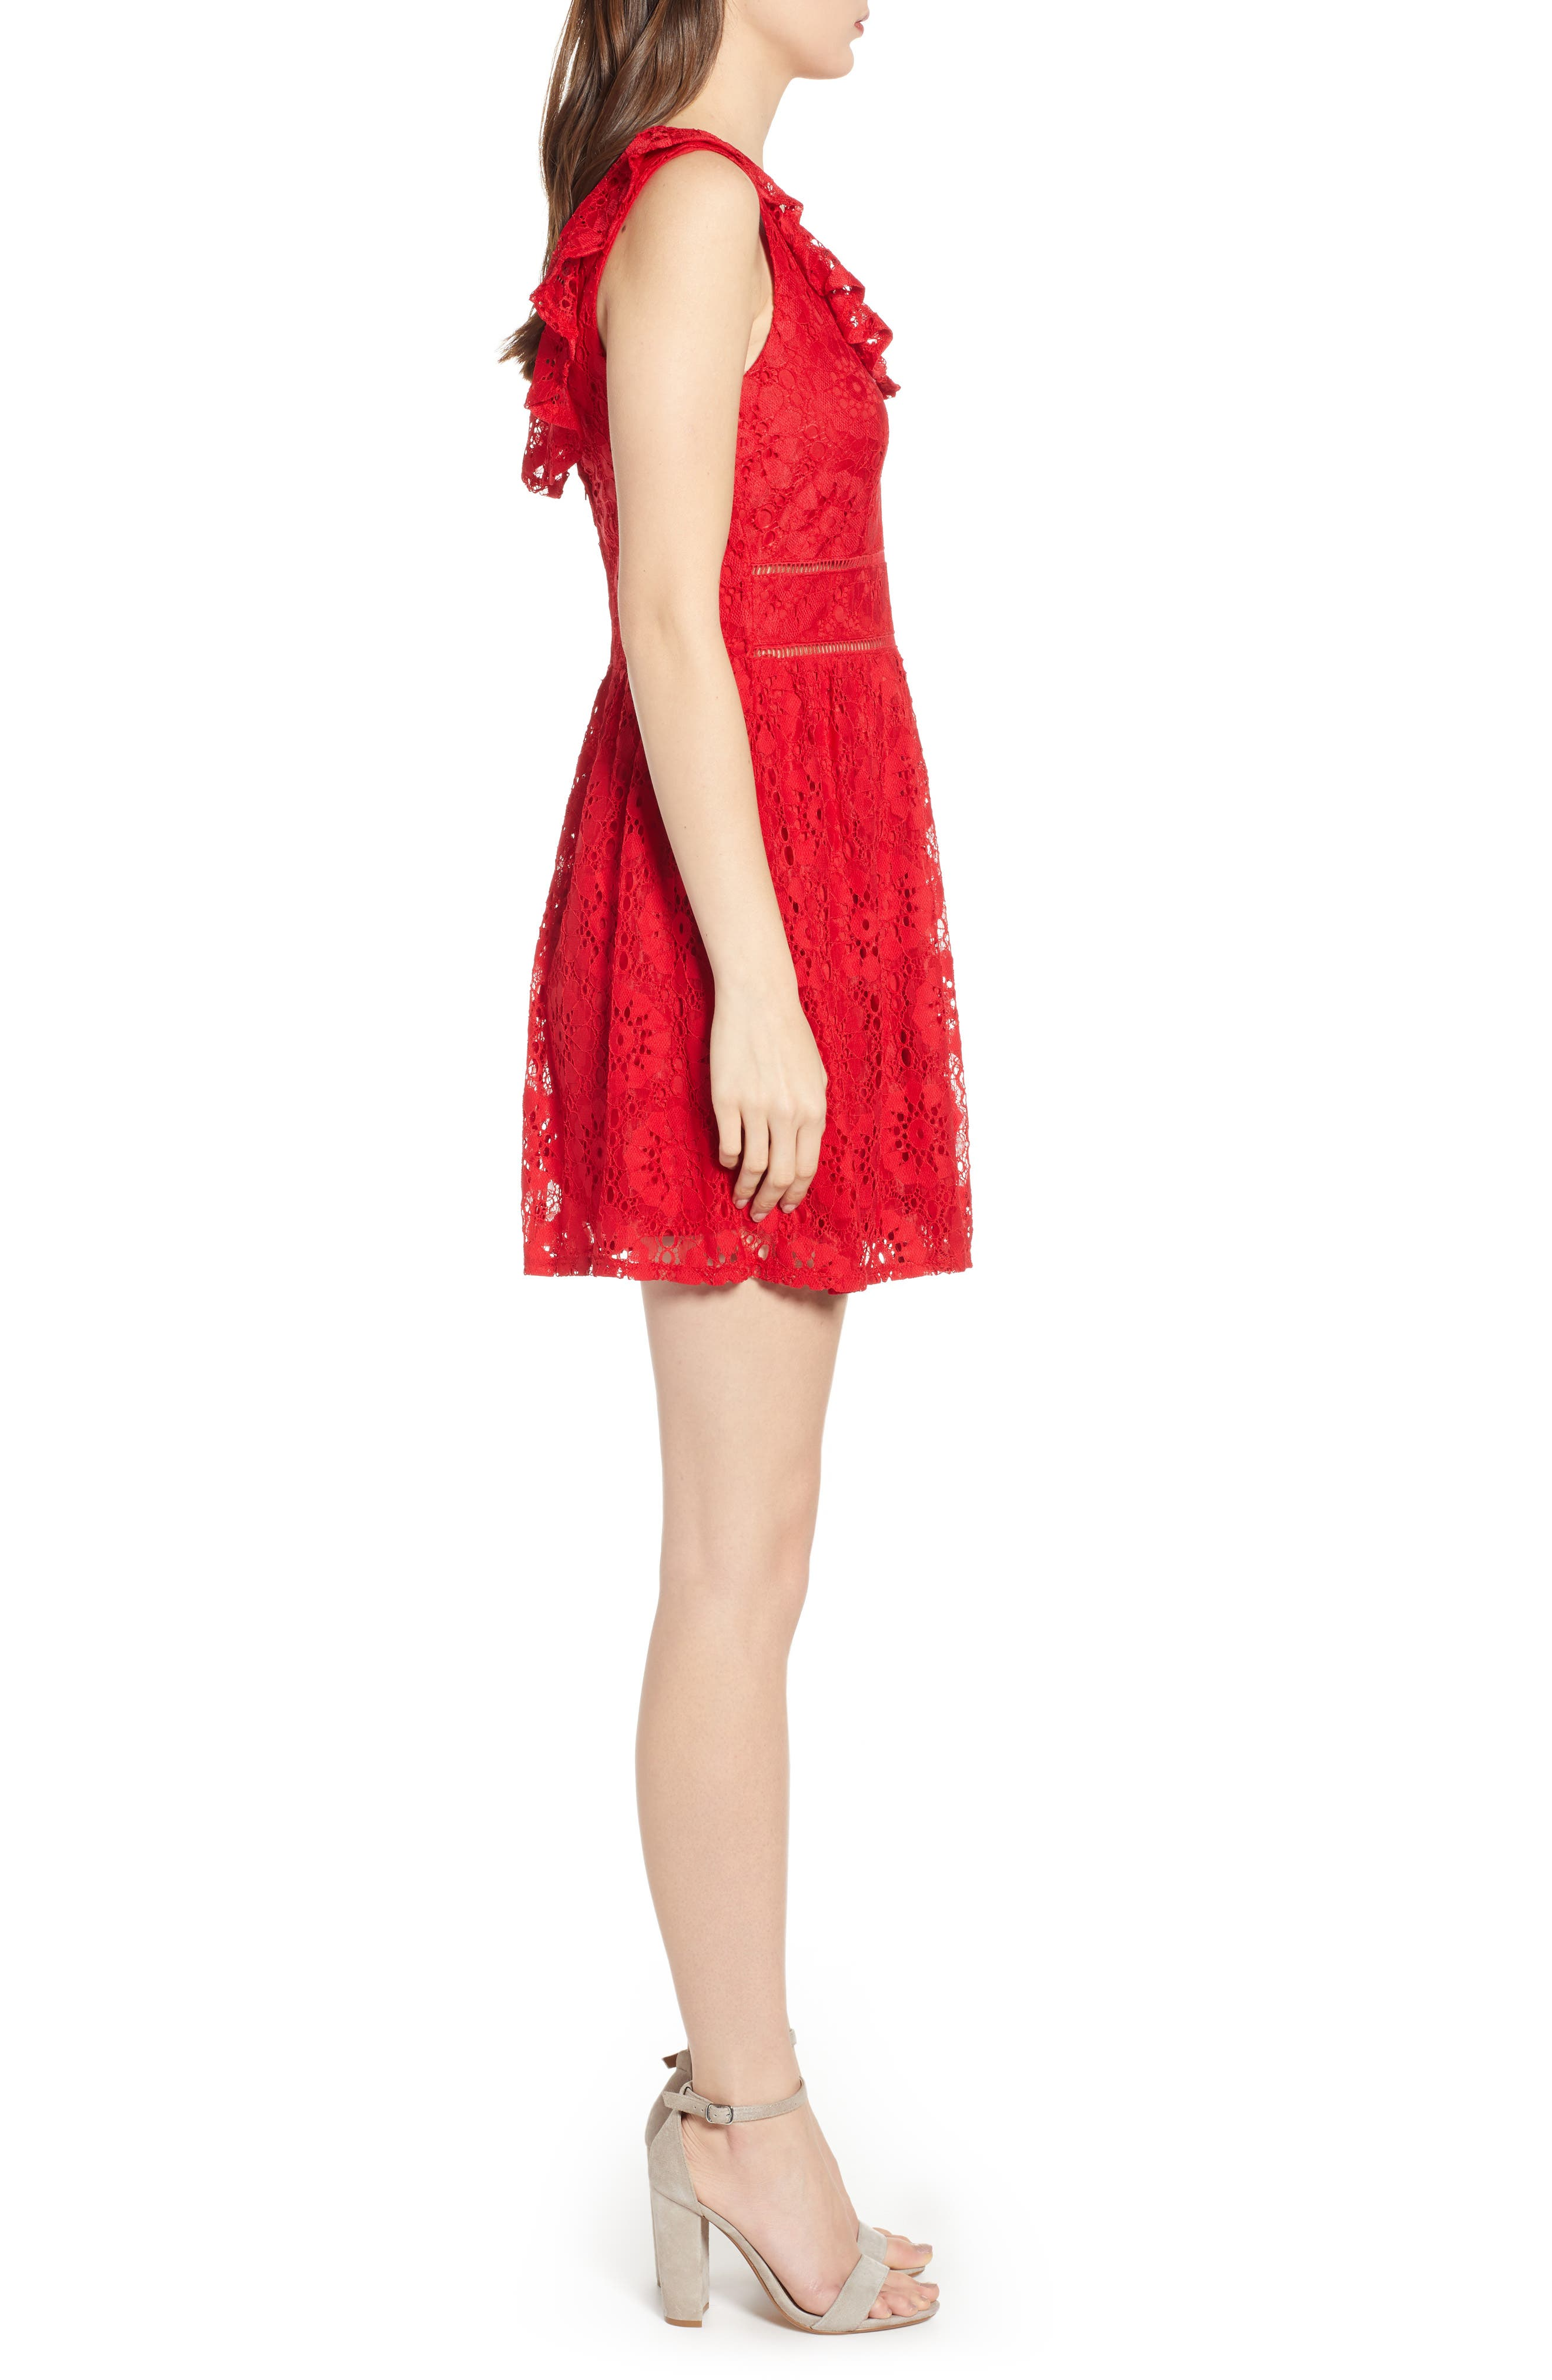 SPEECHLESS, Lace Ruffle Neck Skater Dress, Alternate thumbnail 4, color, RED